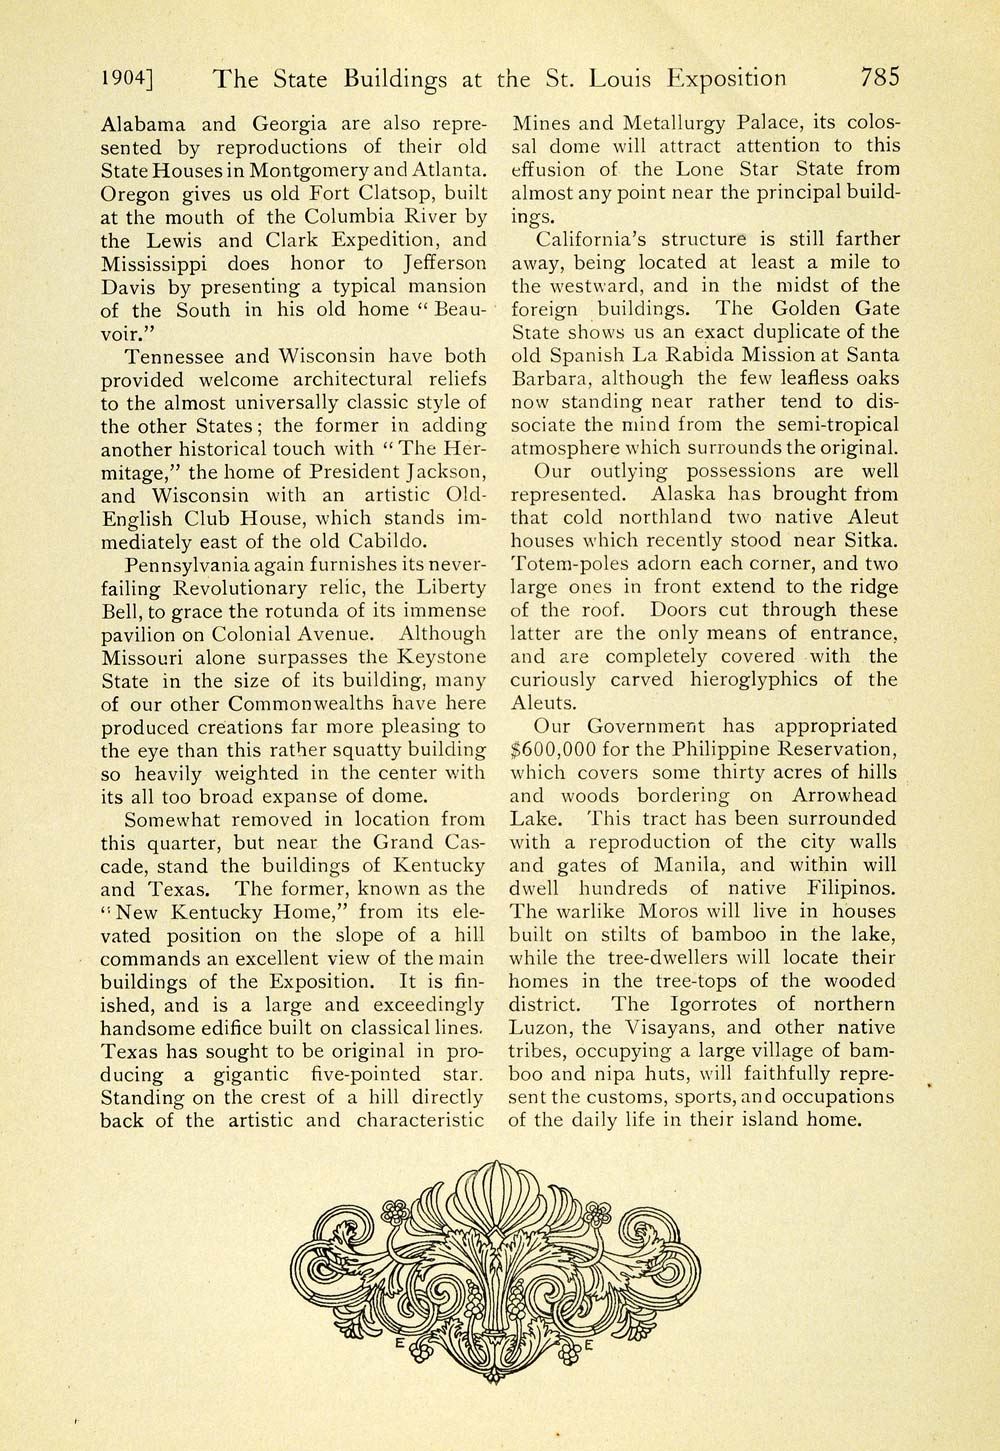 1904 Article Louisiana Purchase Exposition St Louis Worlds Fair State TOM3